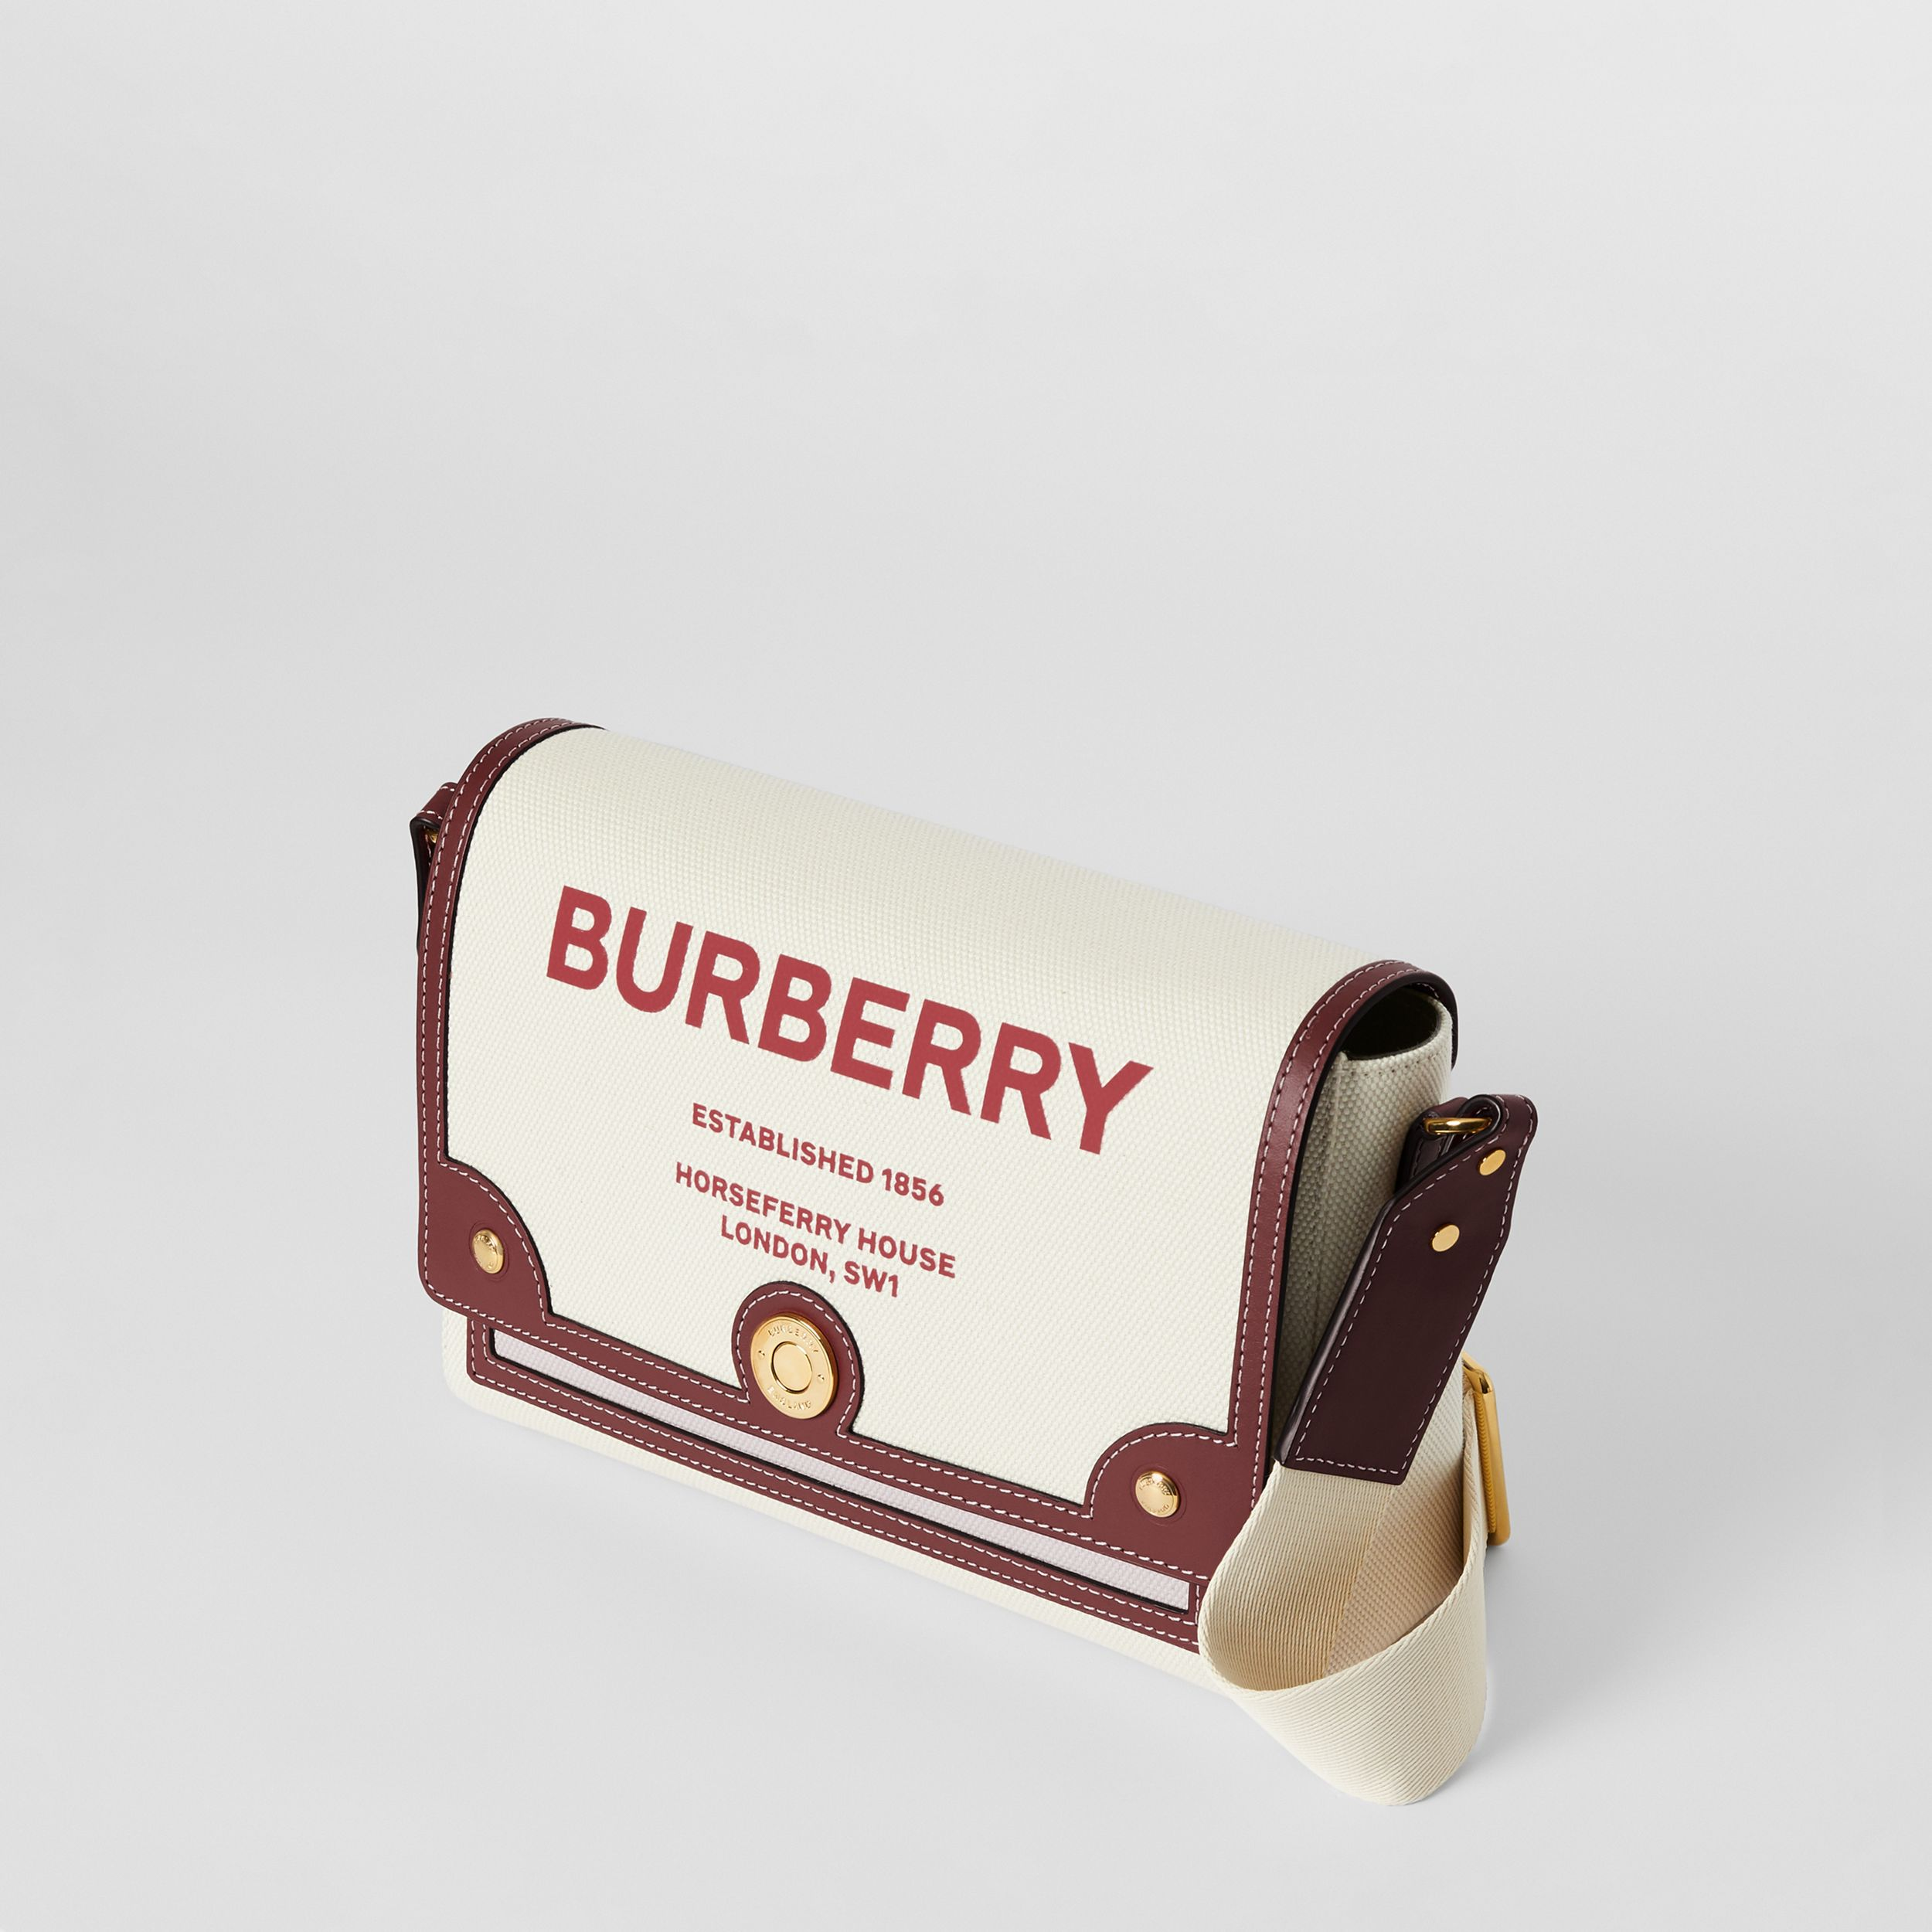 Horseferry Print Canvas Note Crossbody Bag in Natural/garnet - Women | Burberry United Kingdom - 4